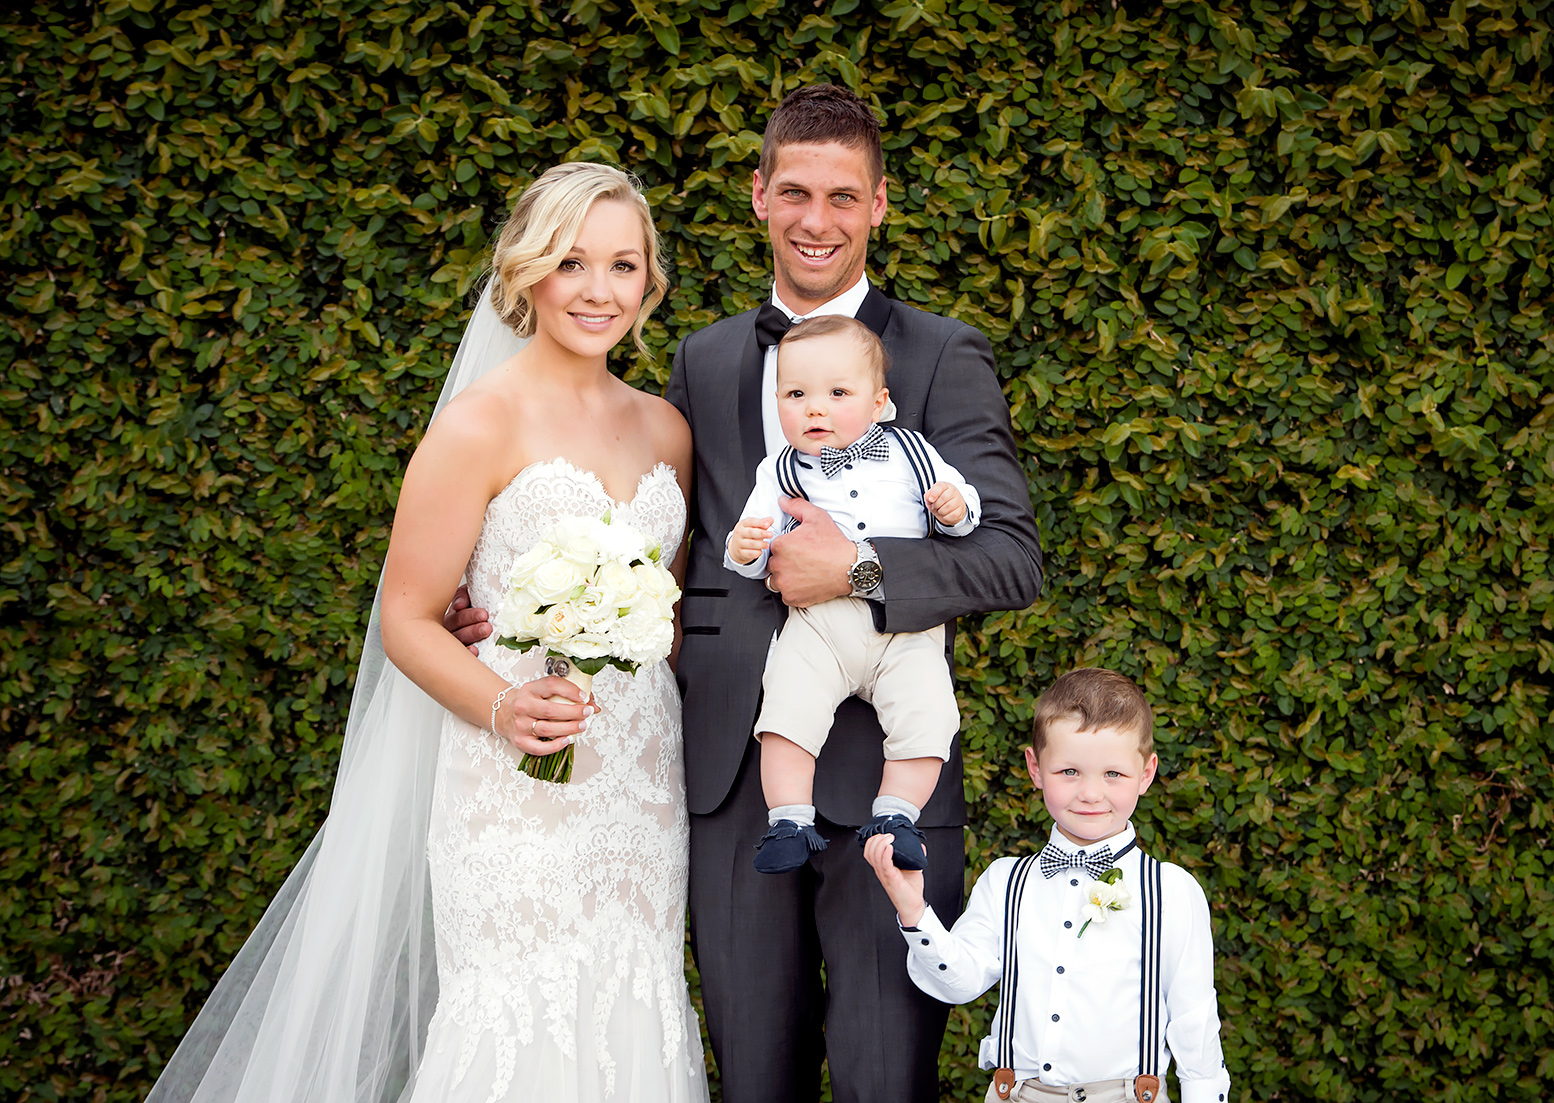 Hannah Lienert and Benny Lienert with their childres on their wedding day.